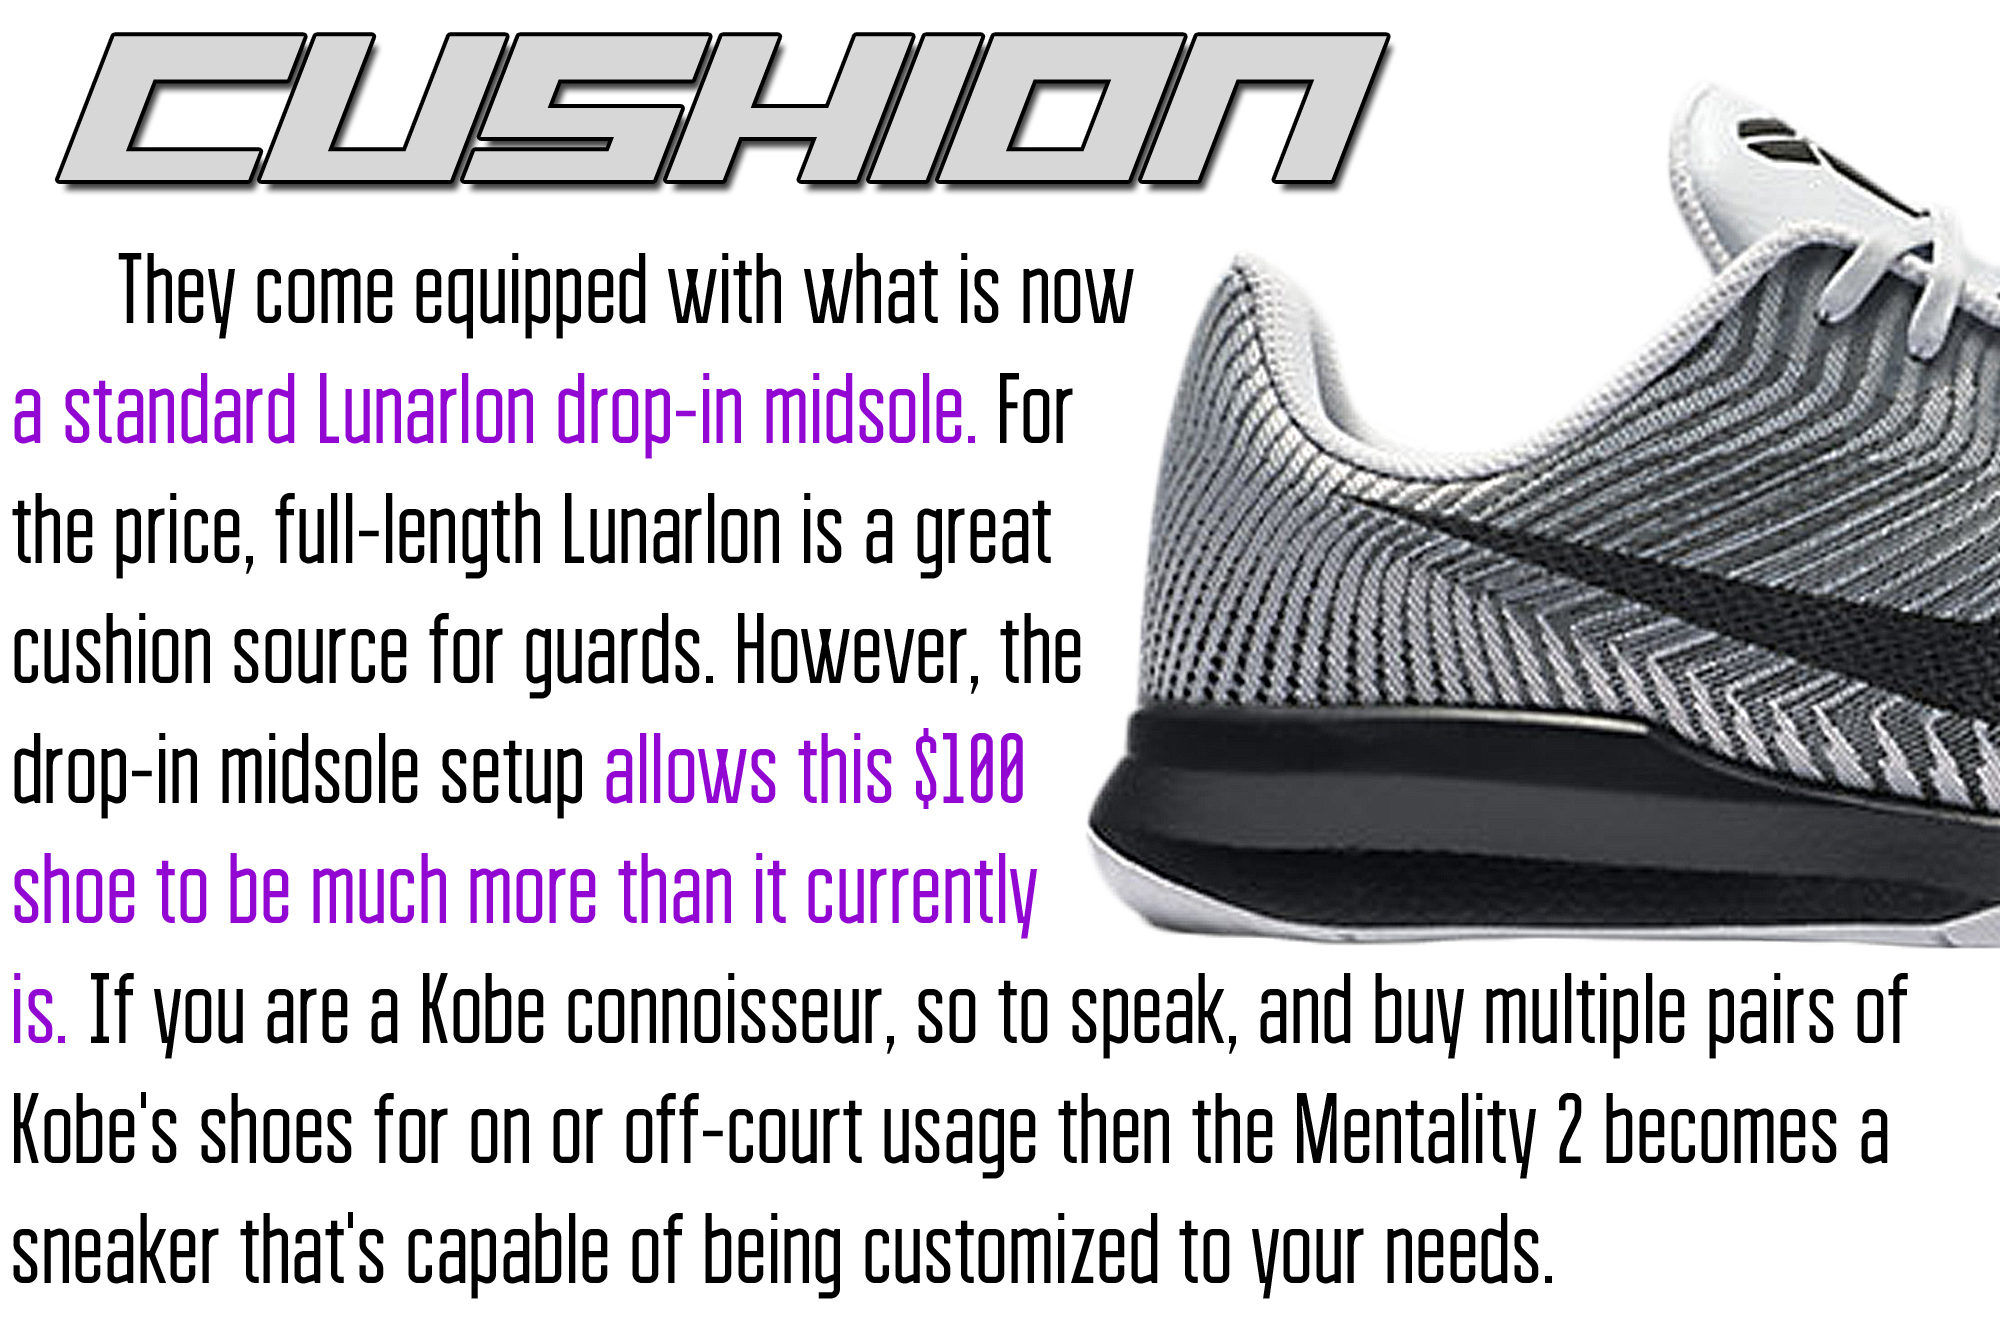 newest caf6a 768a4 ... kobe mentality 2 traction mentality 2 cushion 1 ...